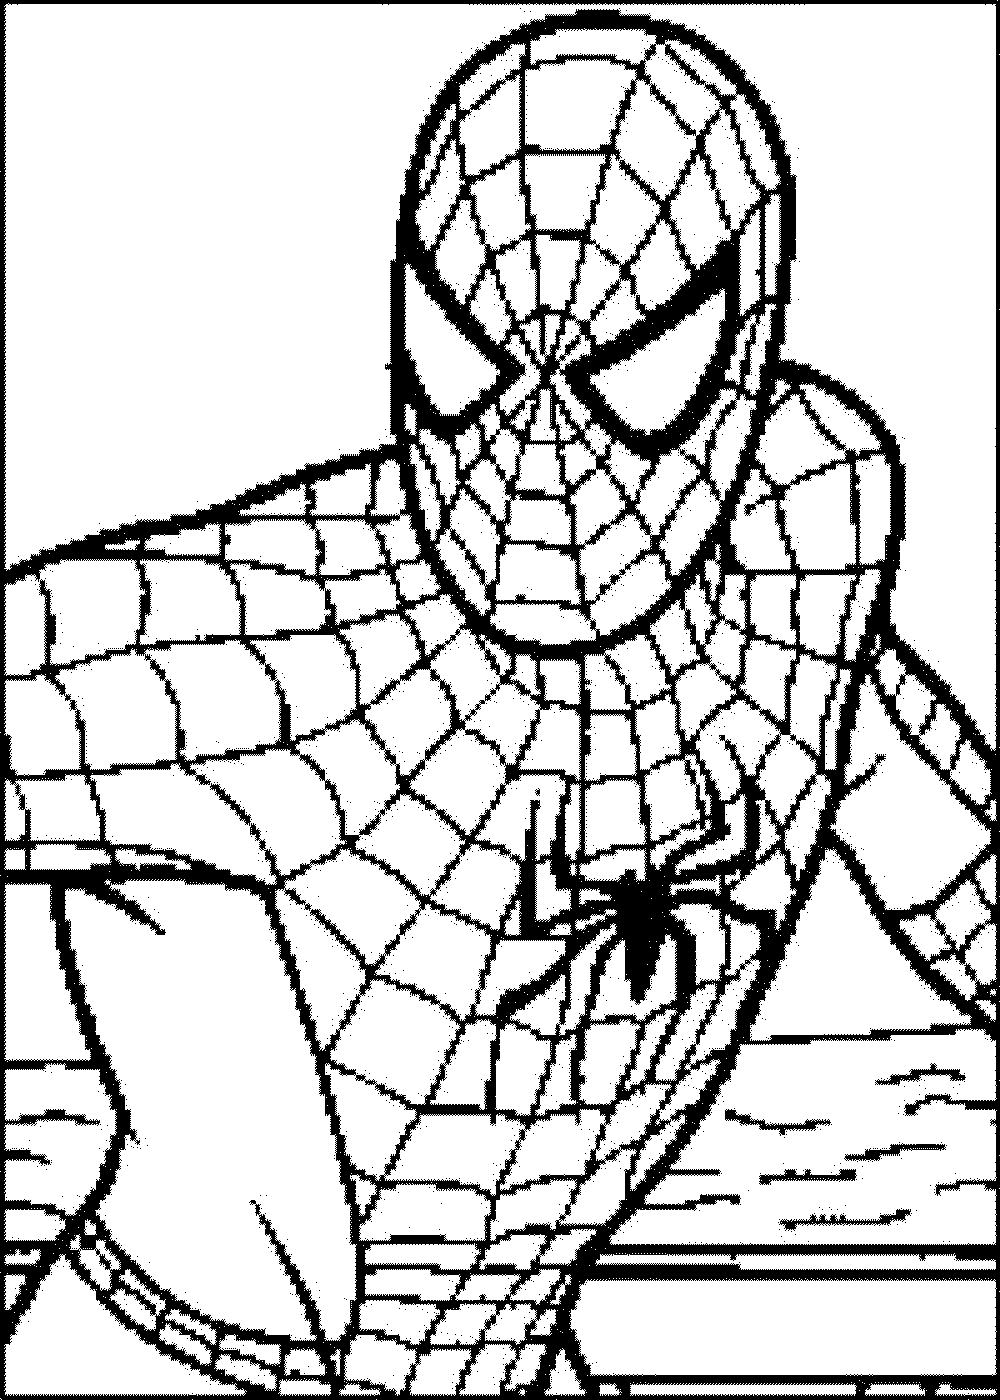 spiderman colouring pics spiderman coloring pages face bestappsforkidscom pics spiderman colouring